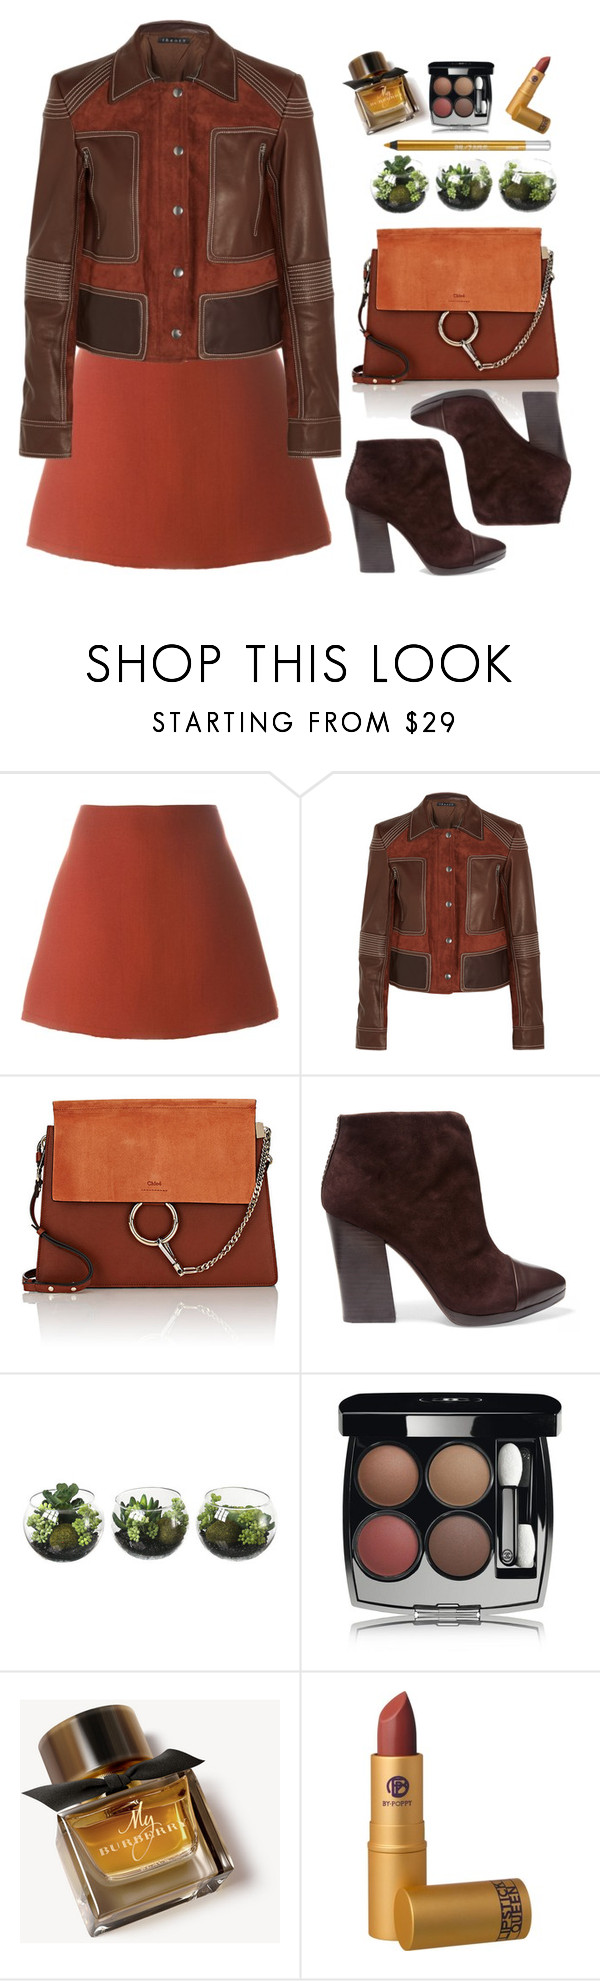 """""""Untitled #470"""" by jovana-p-com ❤ liked on Polyvore featuring Marni, Theory, Chloé, Tory Burch, Chanel, Burberry, Lipstick Queen and Urban Decay"""